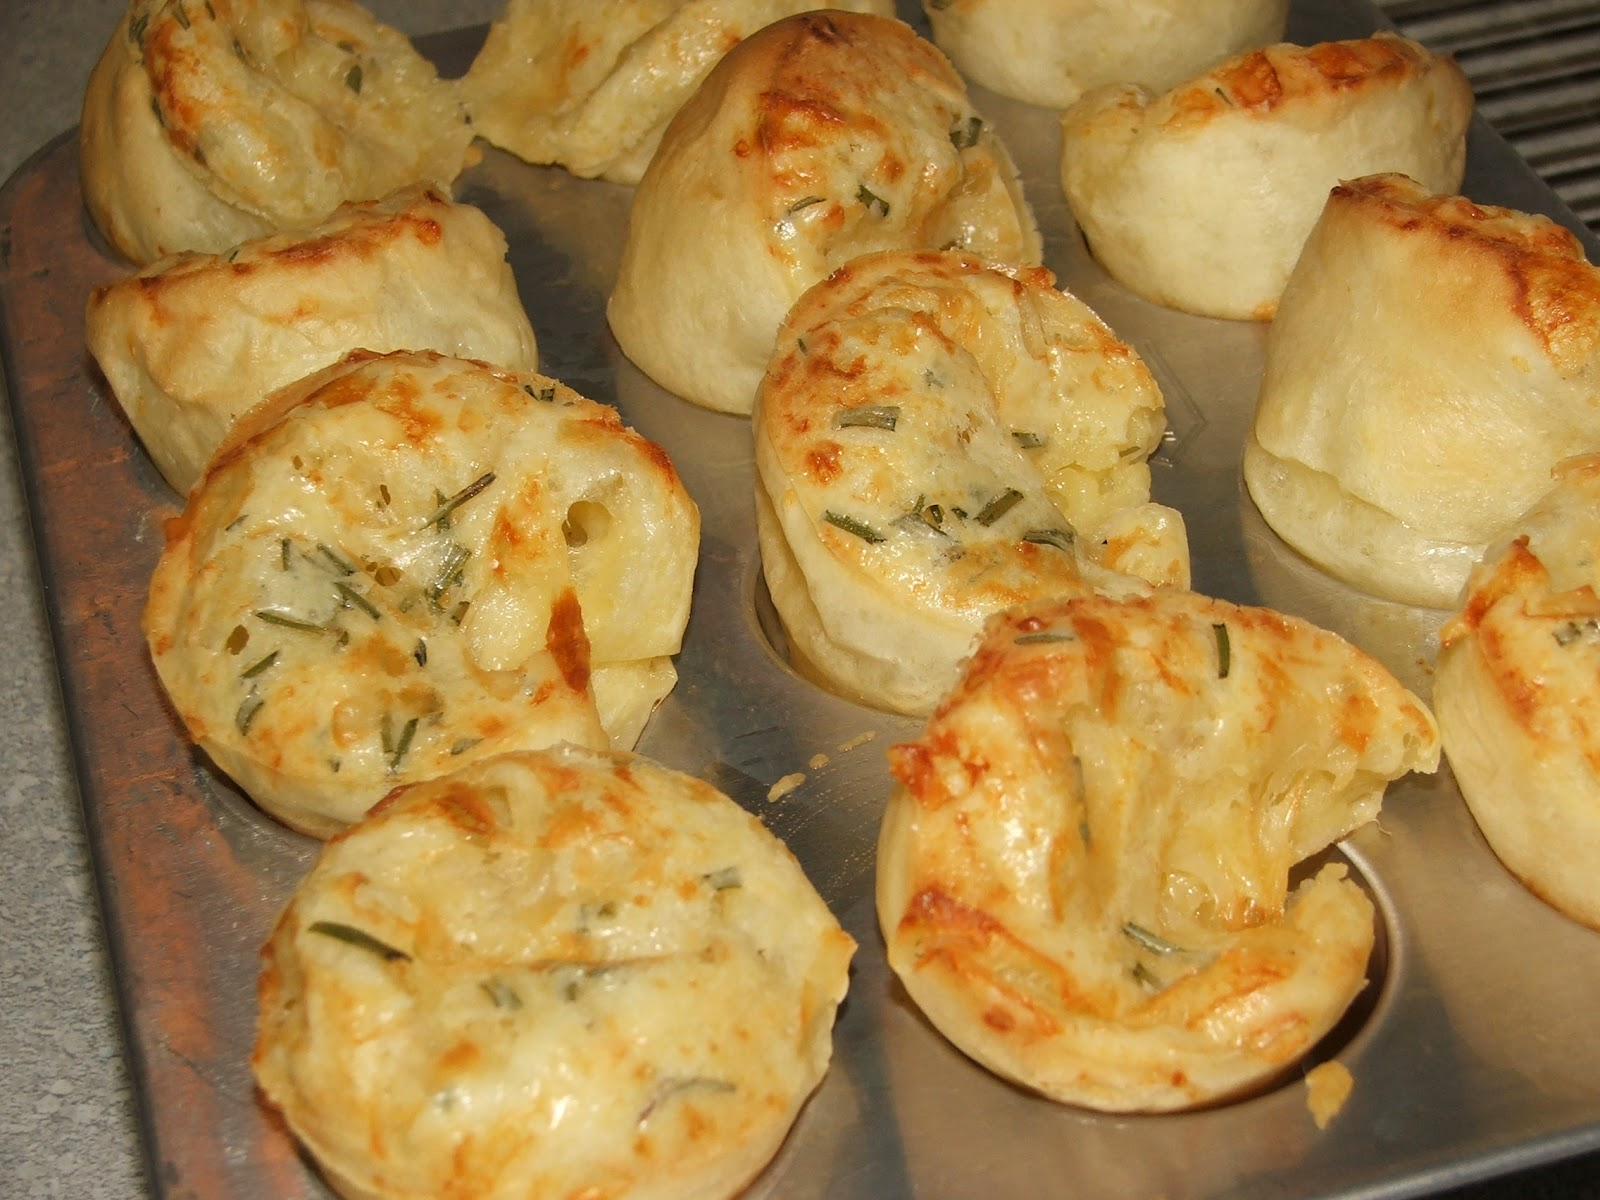 Vine to Dine: Pao de Queijo (Brazilian Cheese Bread)